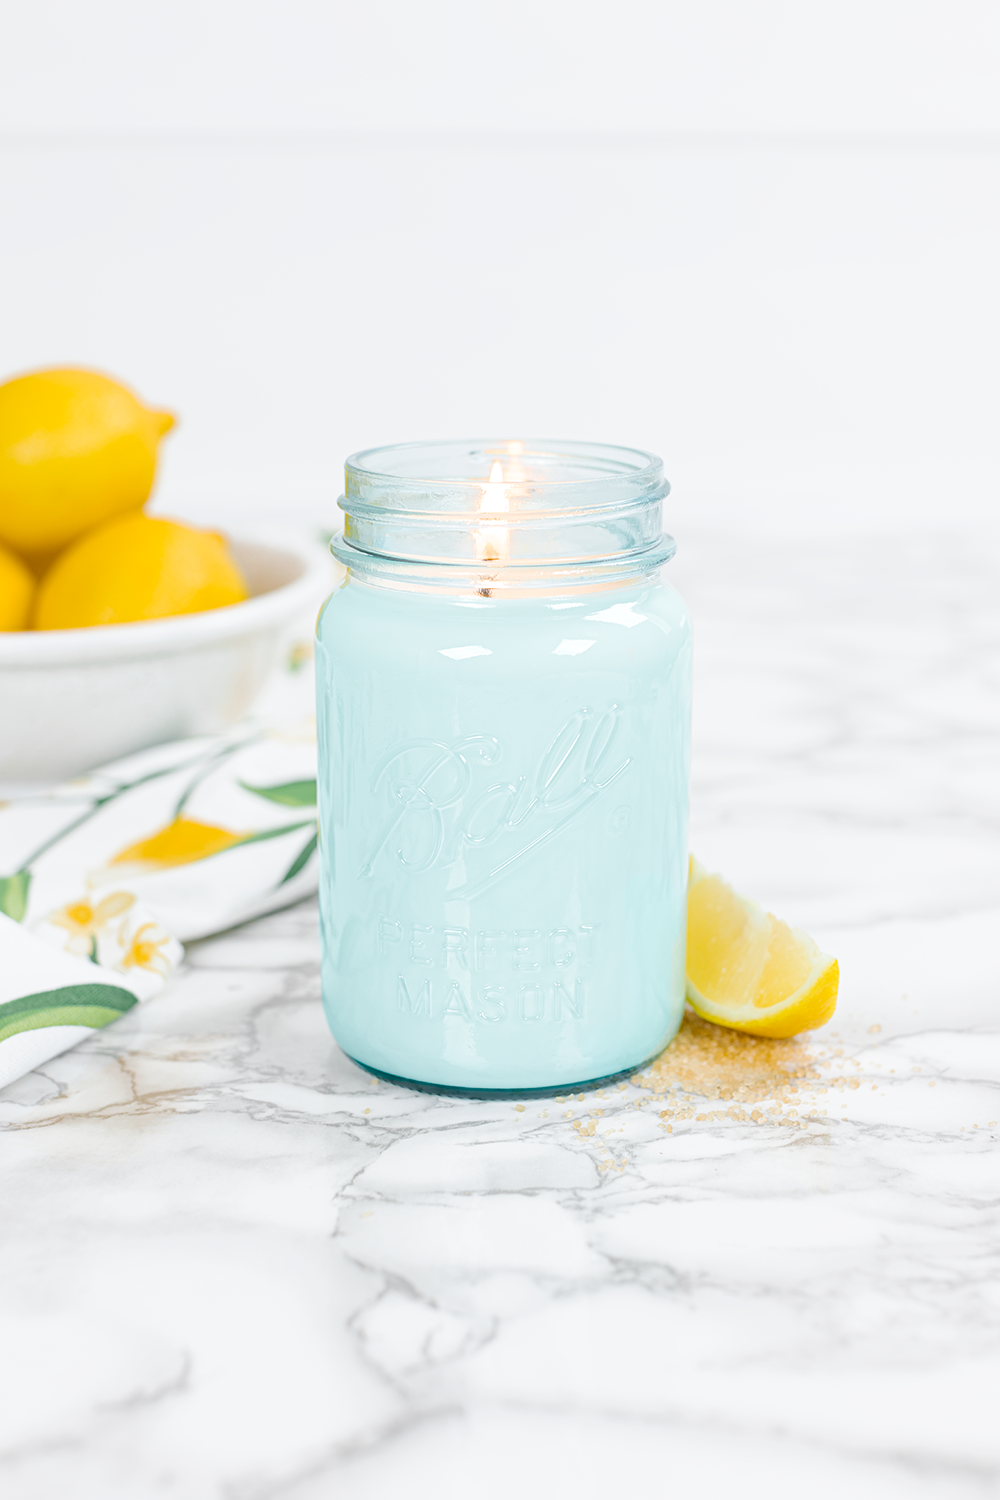 These made in America small batch candles using the finest ingredients are the absolutely best smelling candles I've ever smelled kellyelko.com #candles #candle #giftsforher #giftguide #farmhouse #masonjar #masonjardecor #farmhousedecor #fixerupper #vintagedecor #vintagestyle